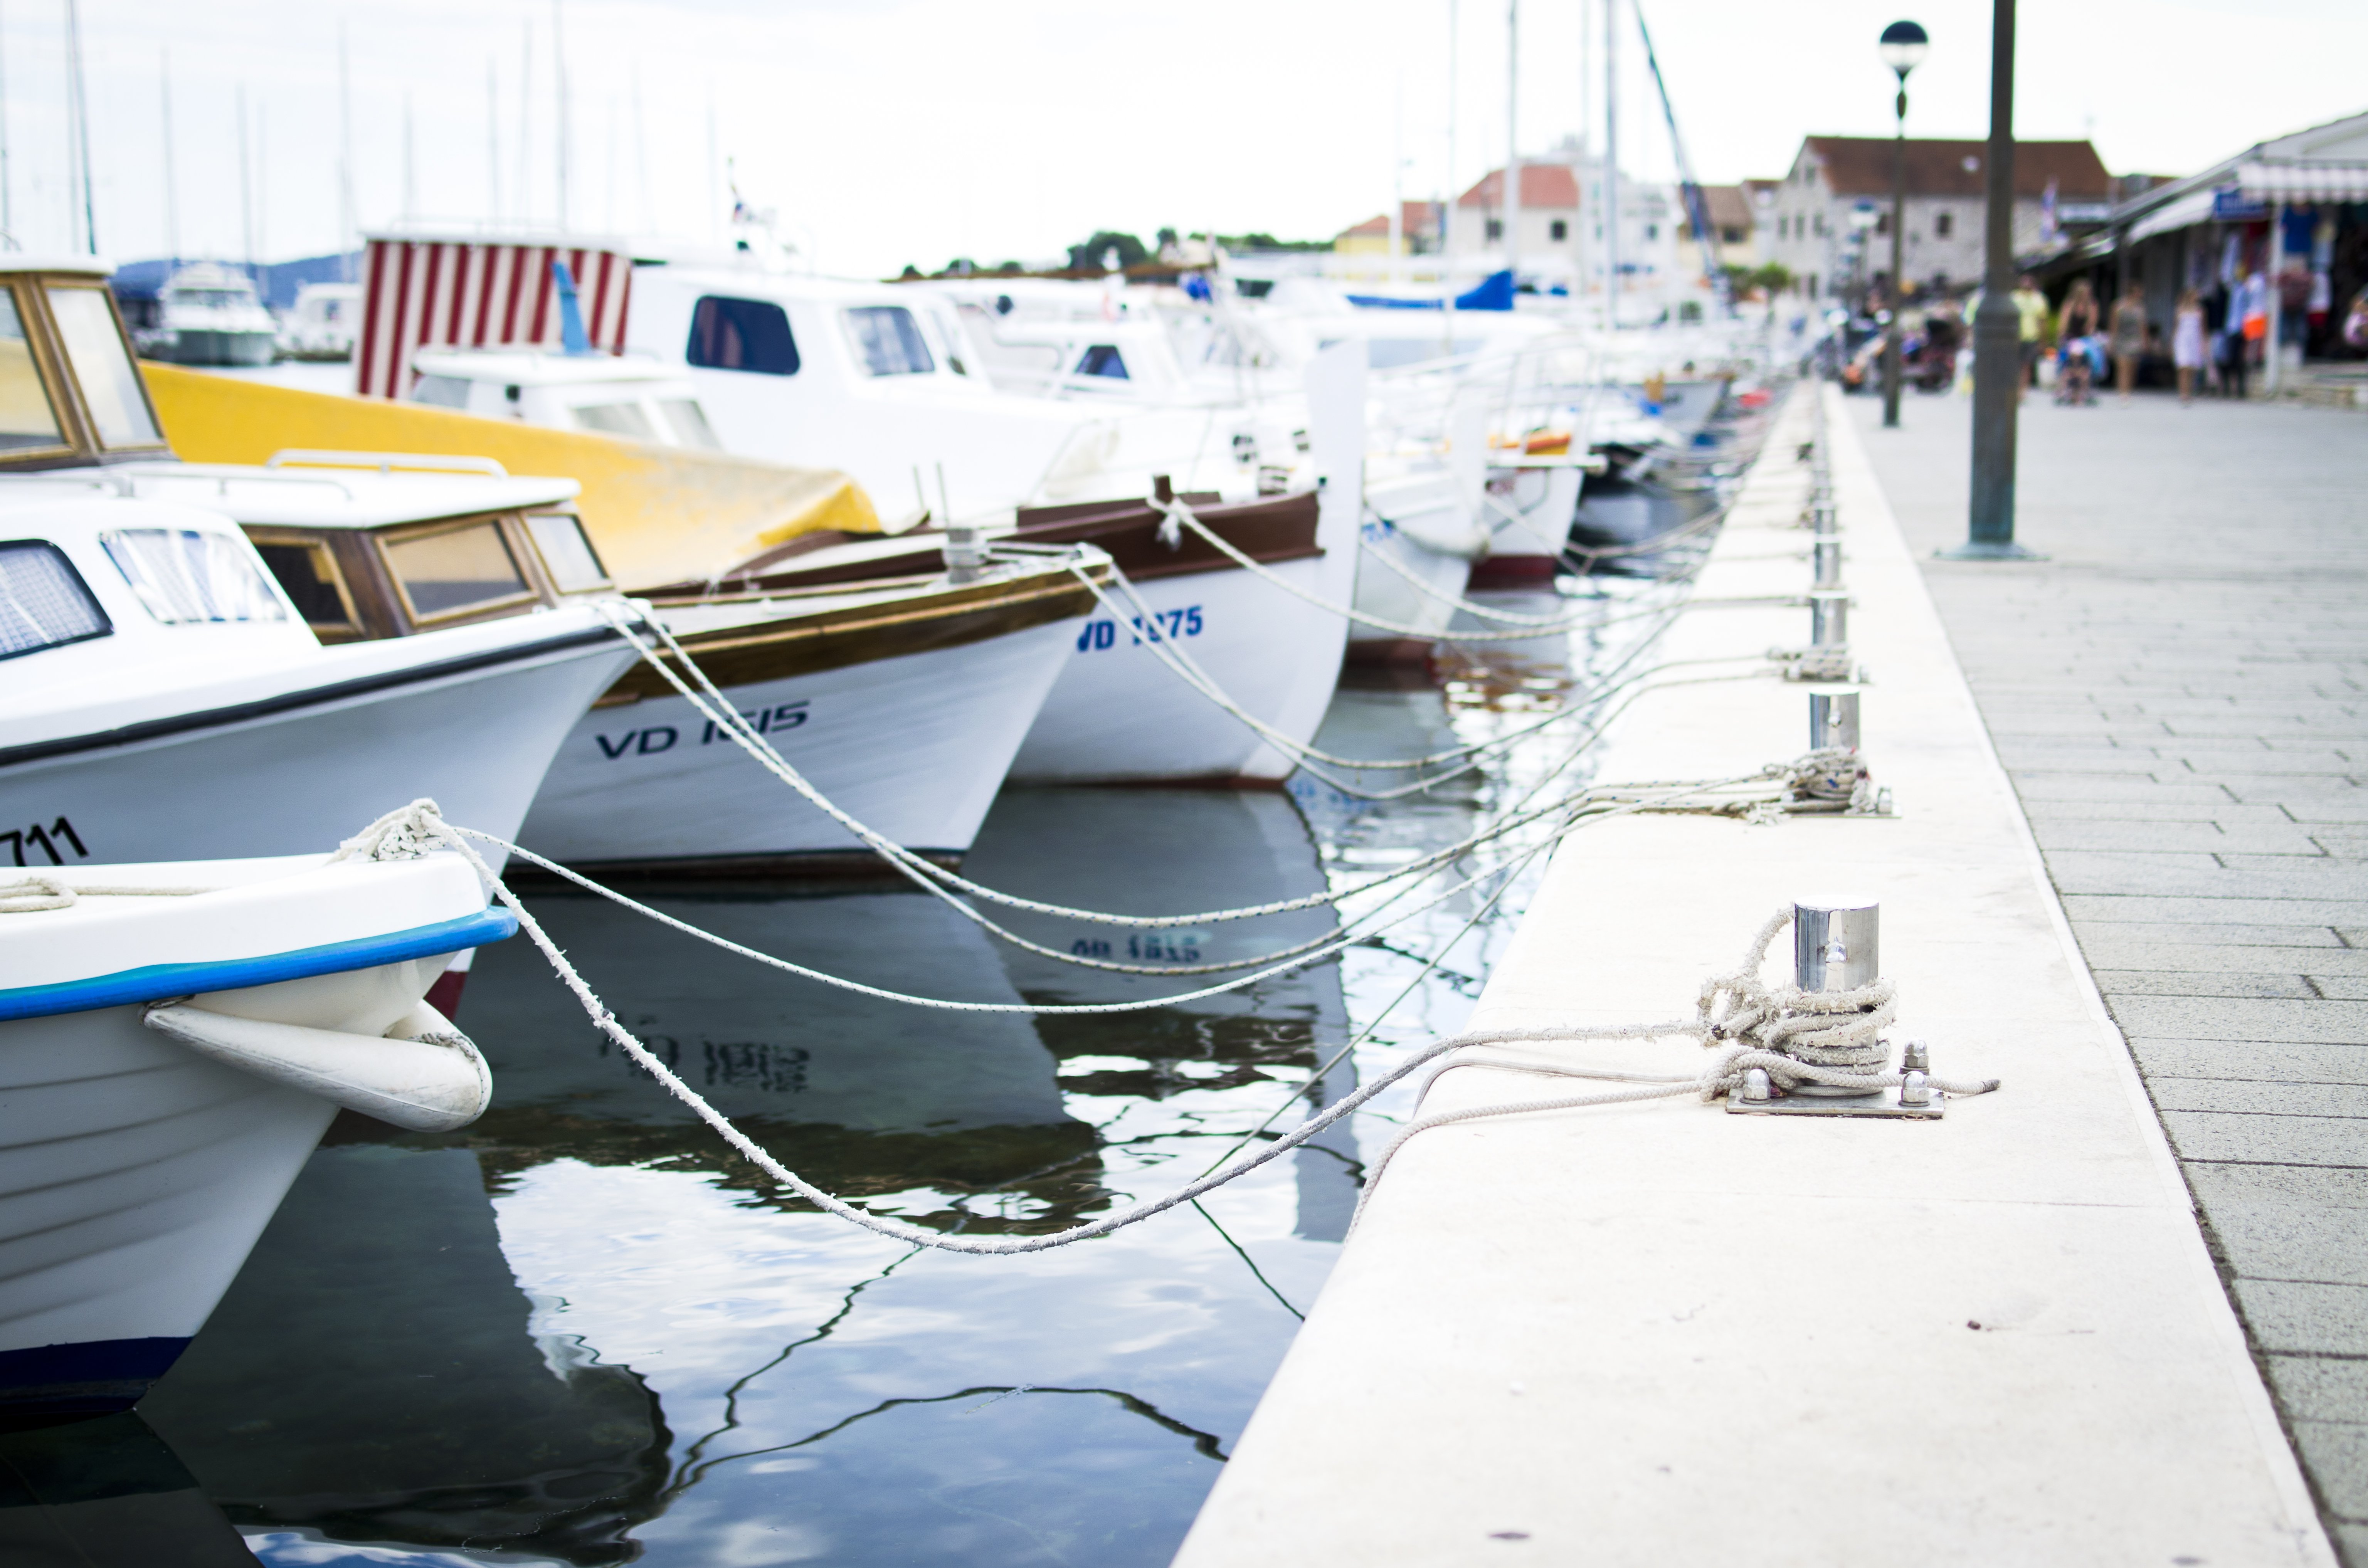 Sea dock with boats waiting